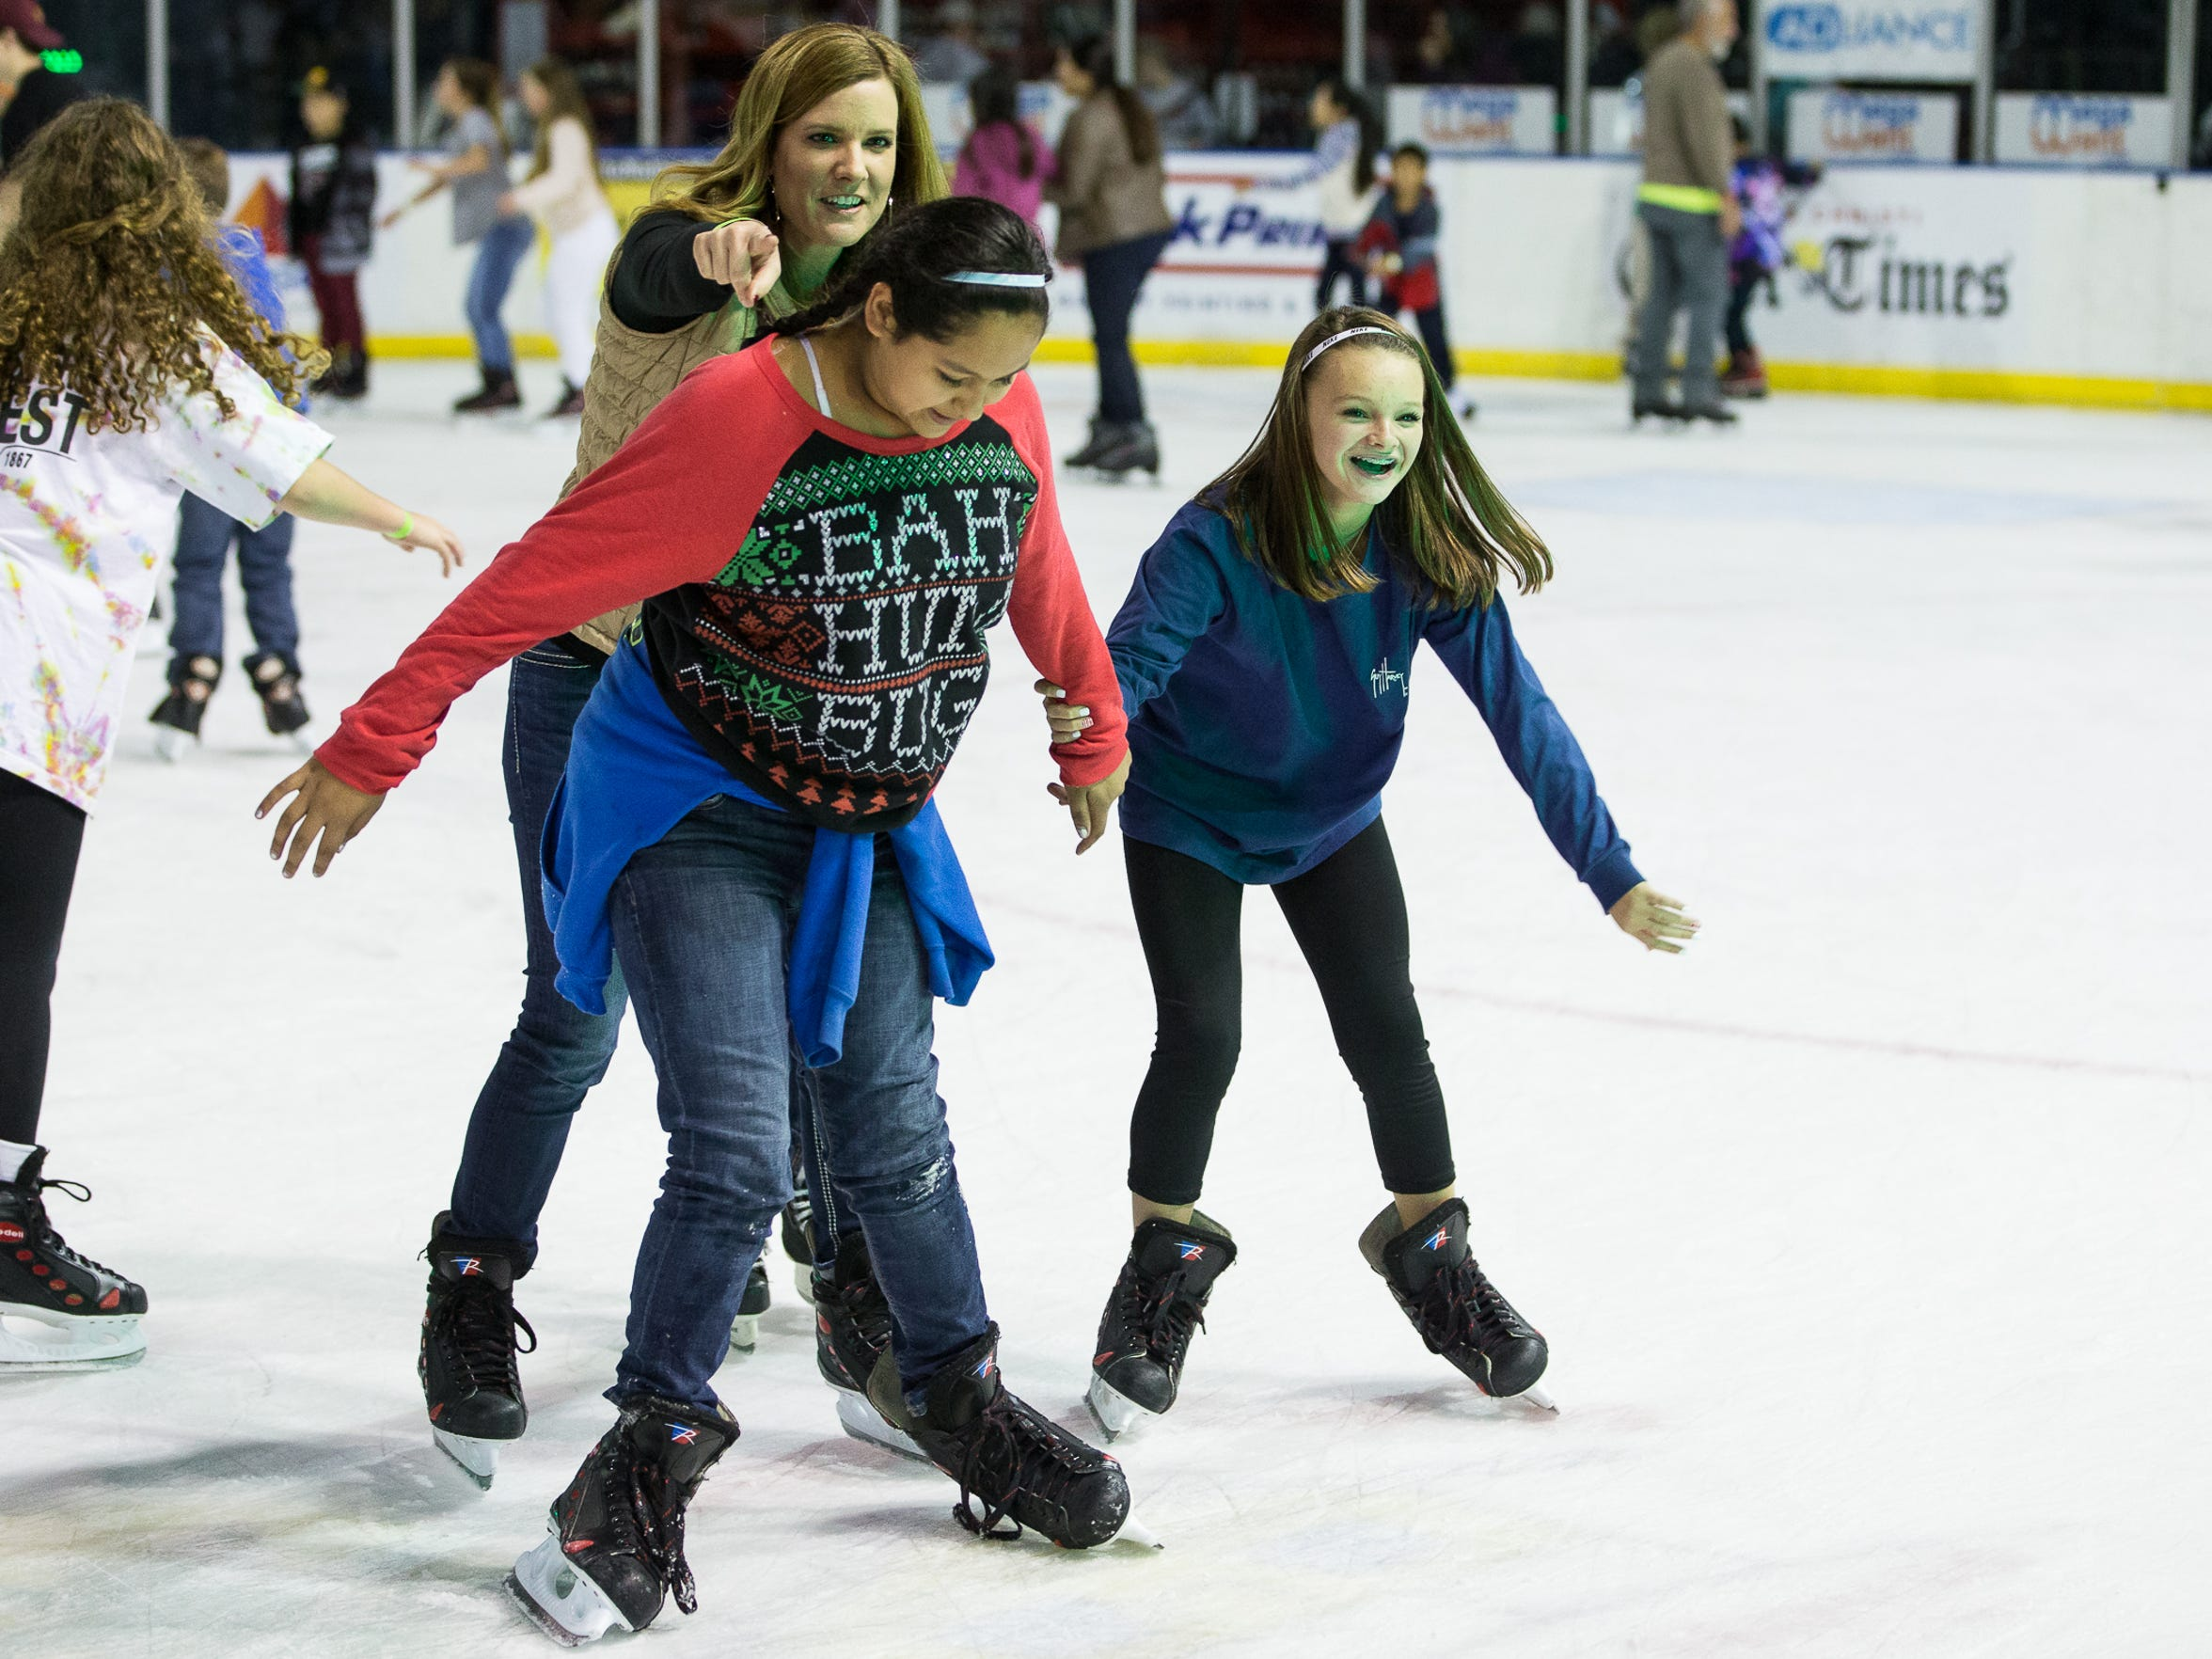 People skate on the ice during American Bank Center's Winter Wonderland Skating & Holiday Event on Thursday, Dec. 22, 2016.